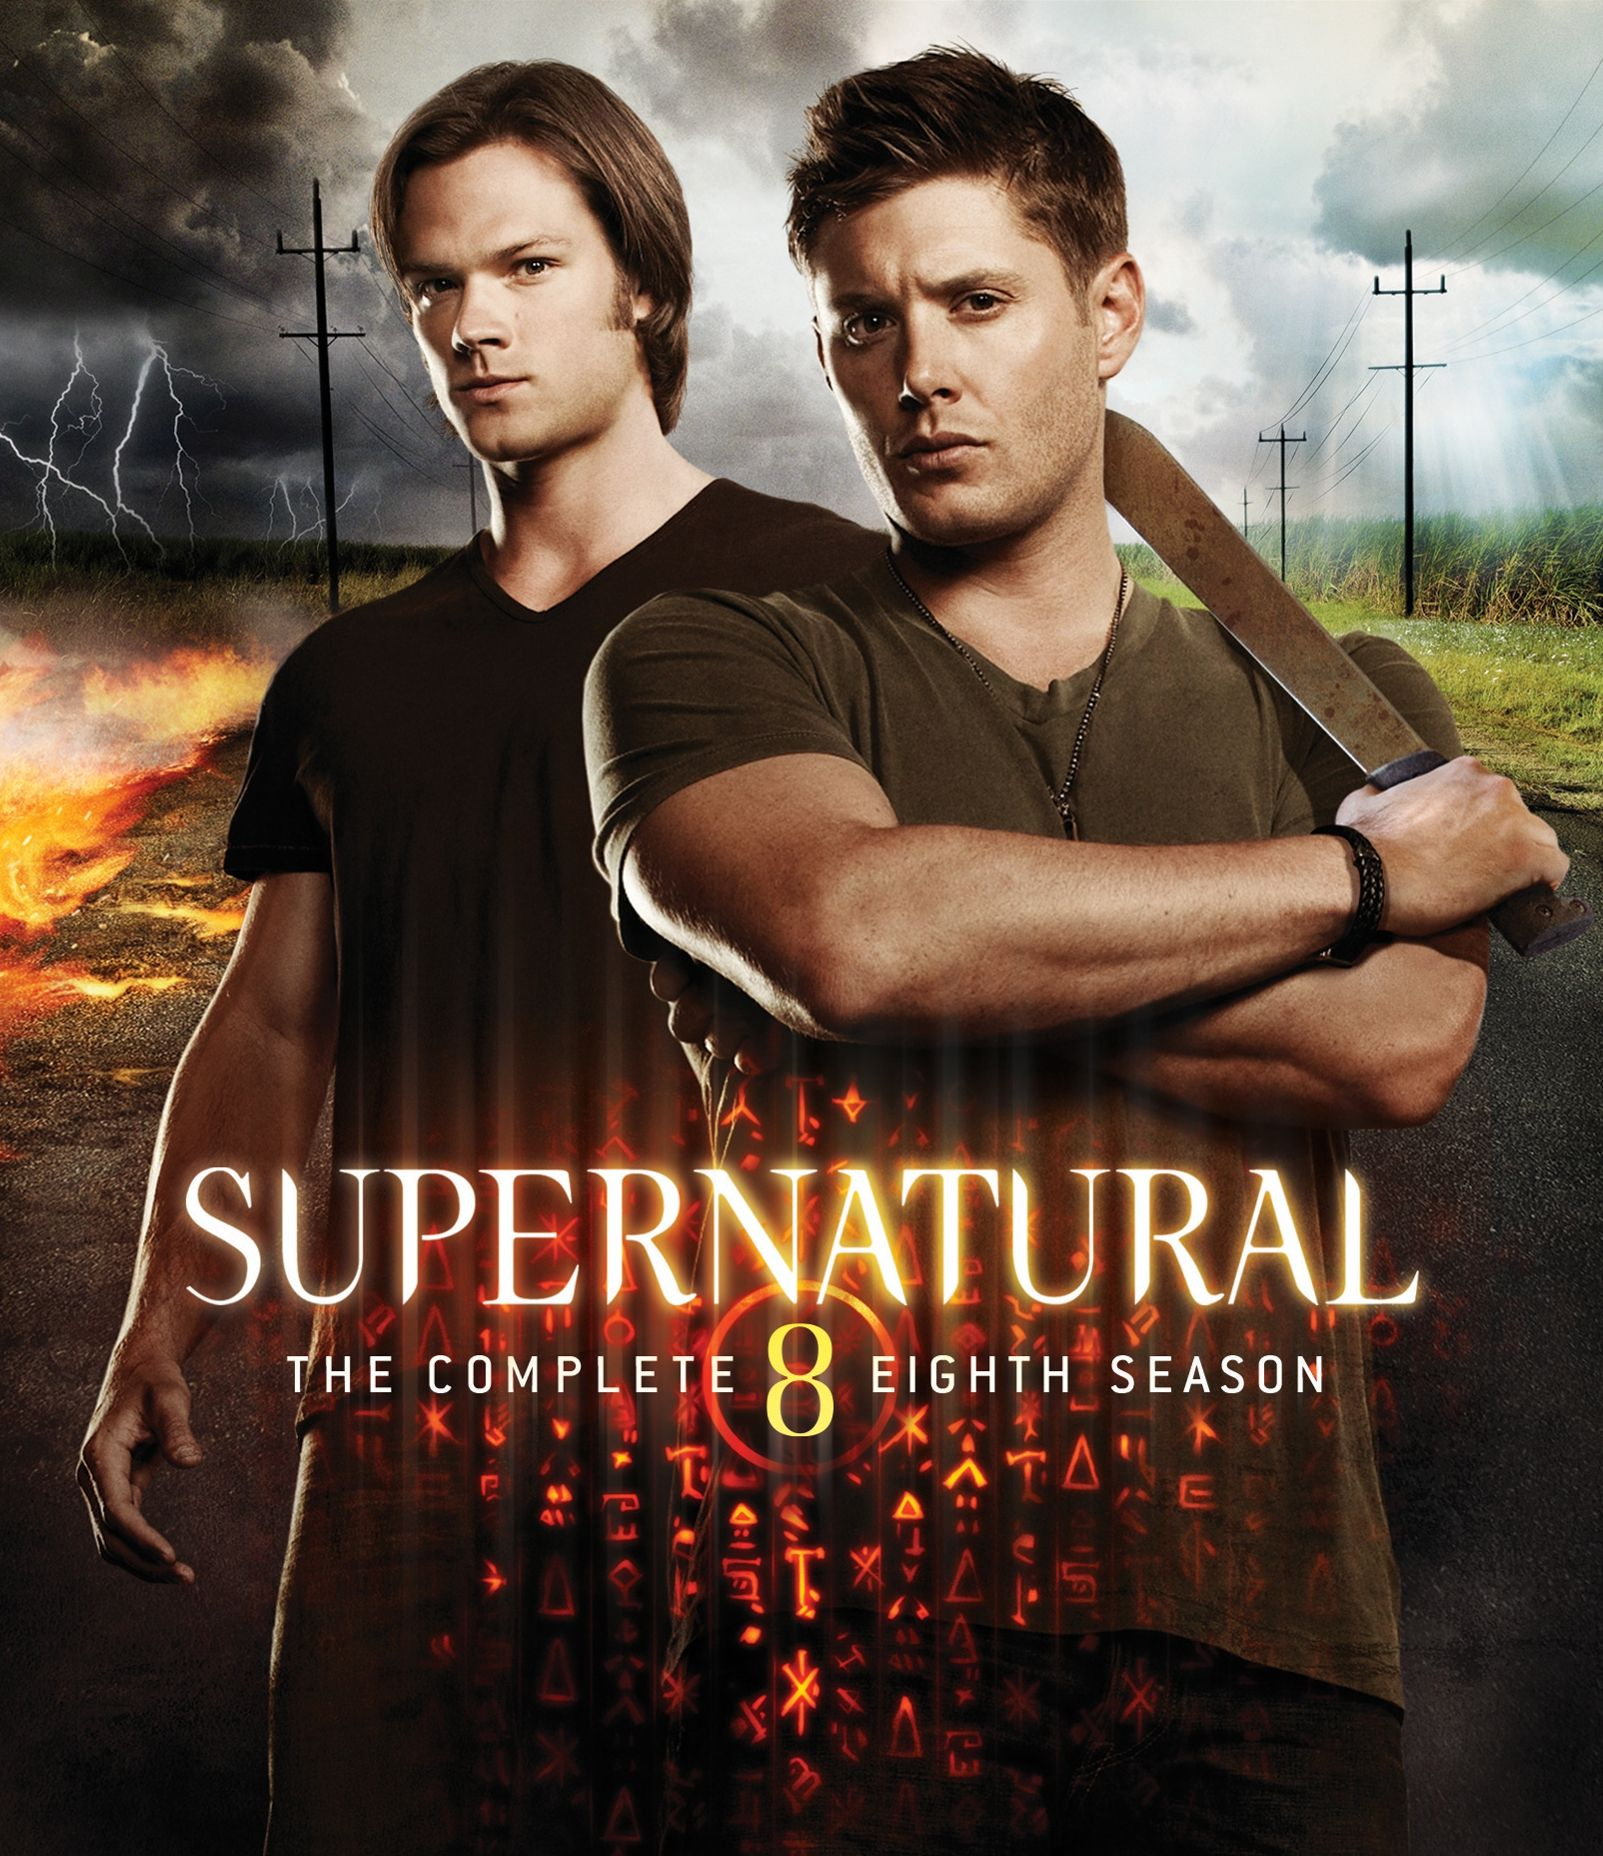 Supernatural Libros Movies Supernatural Season8 2012 2012 Watch Movies